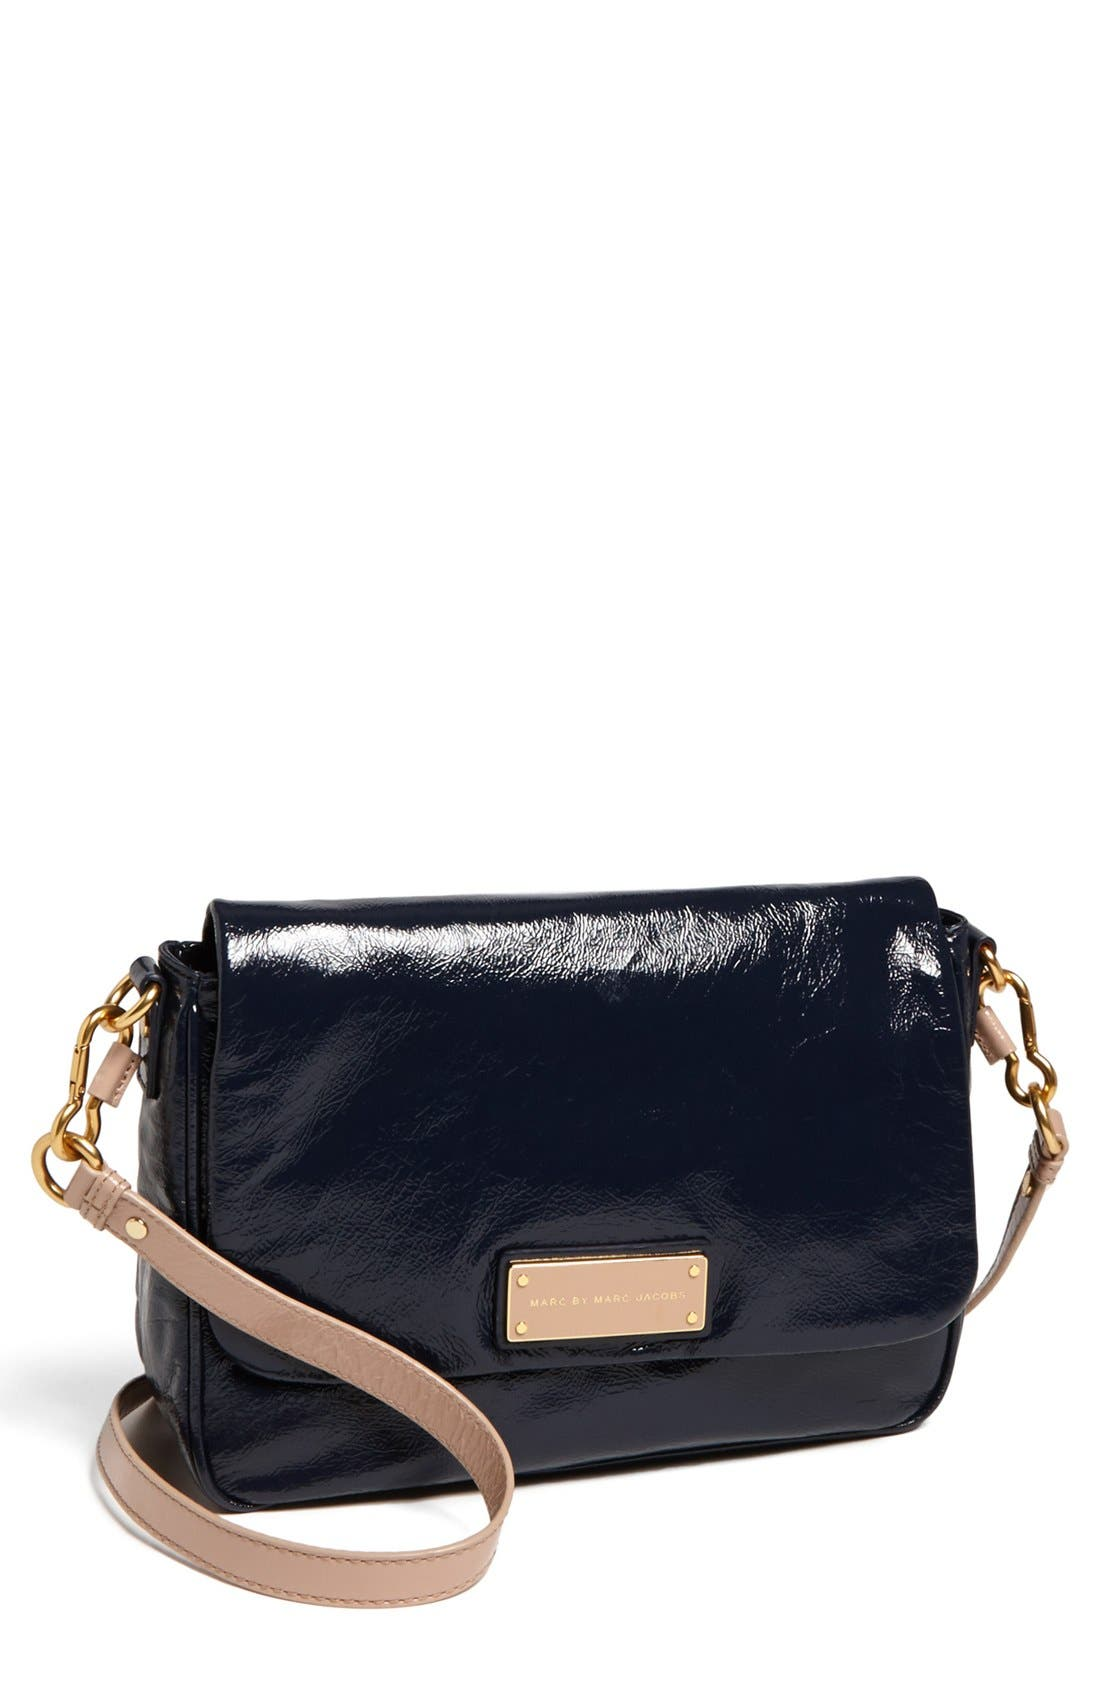 Alternate Image 1 Selected - MARC BY MARC JACOBS 'Lea' Glazed Crossbody Flap Bag